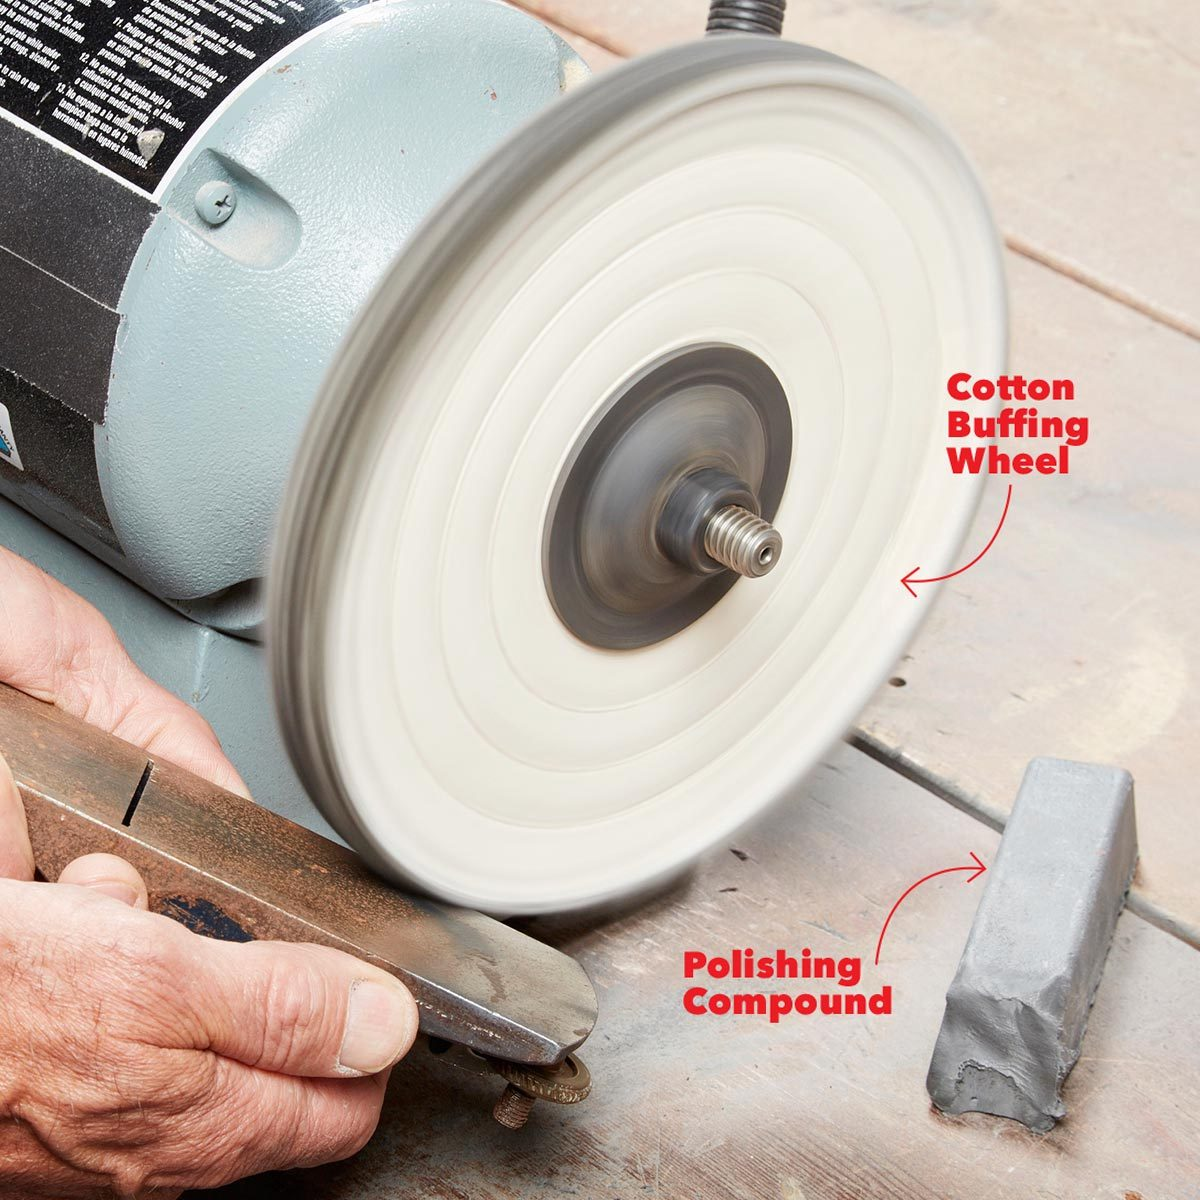 Phenomenal Bench Grinder Basics You Need To Know The Family Handyman Alphanode Cool Chair Designs And Ideas Alphanodeonline